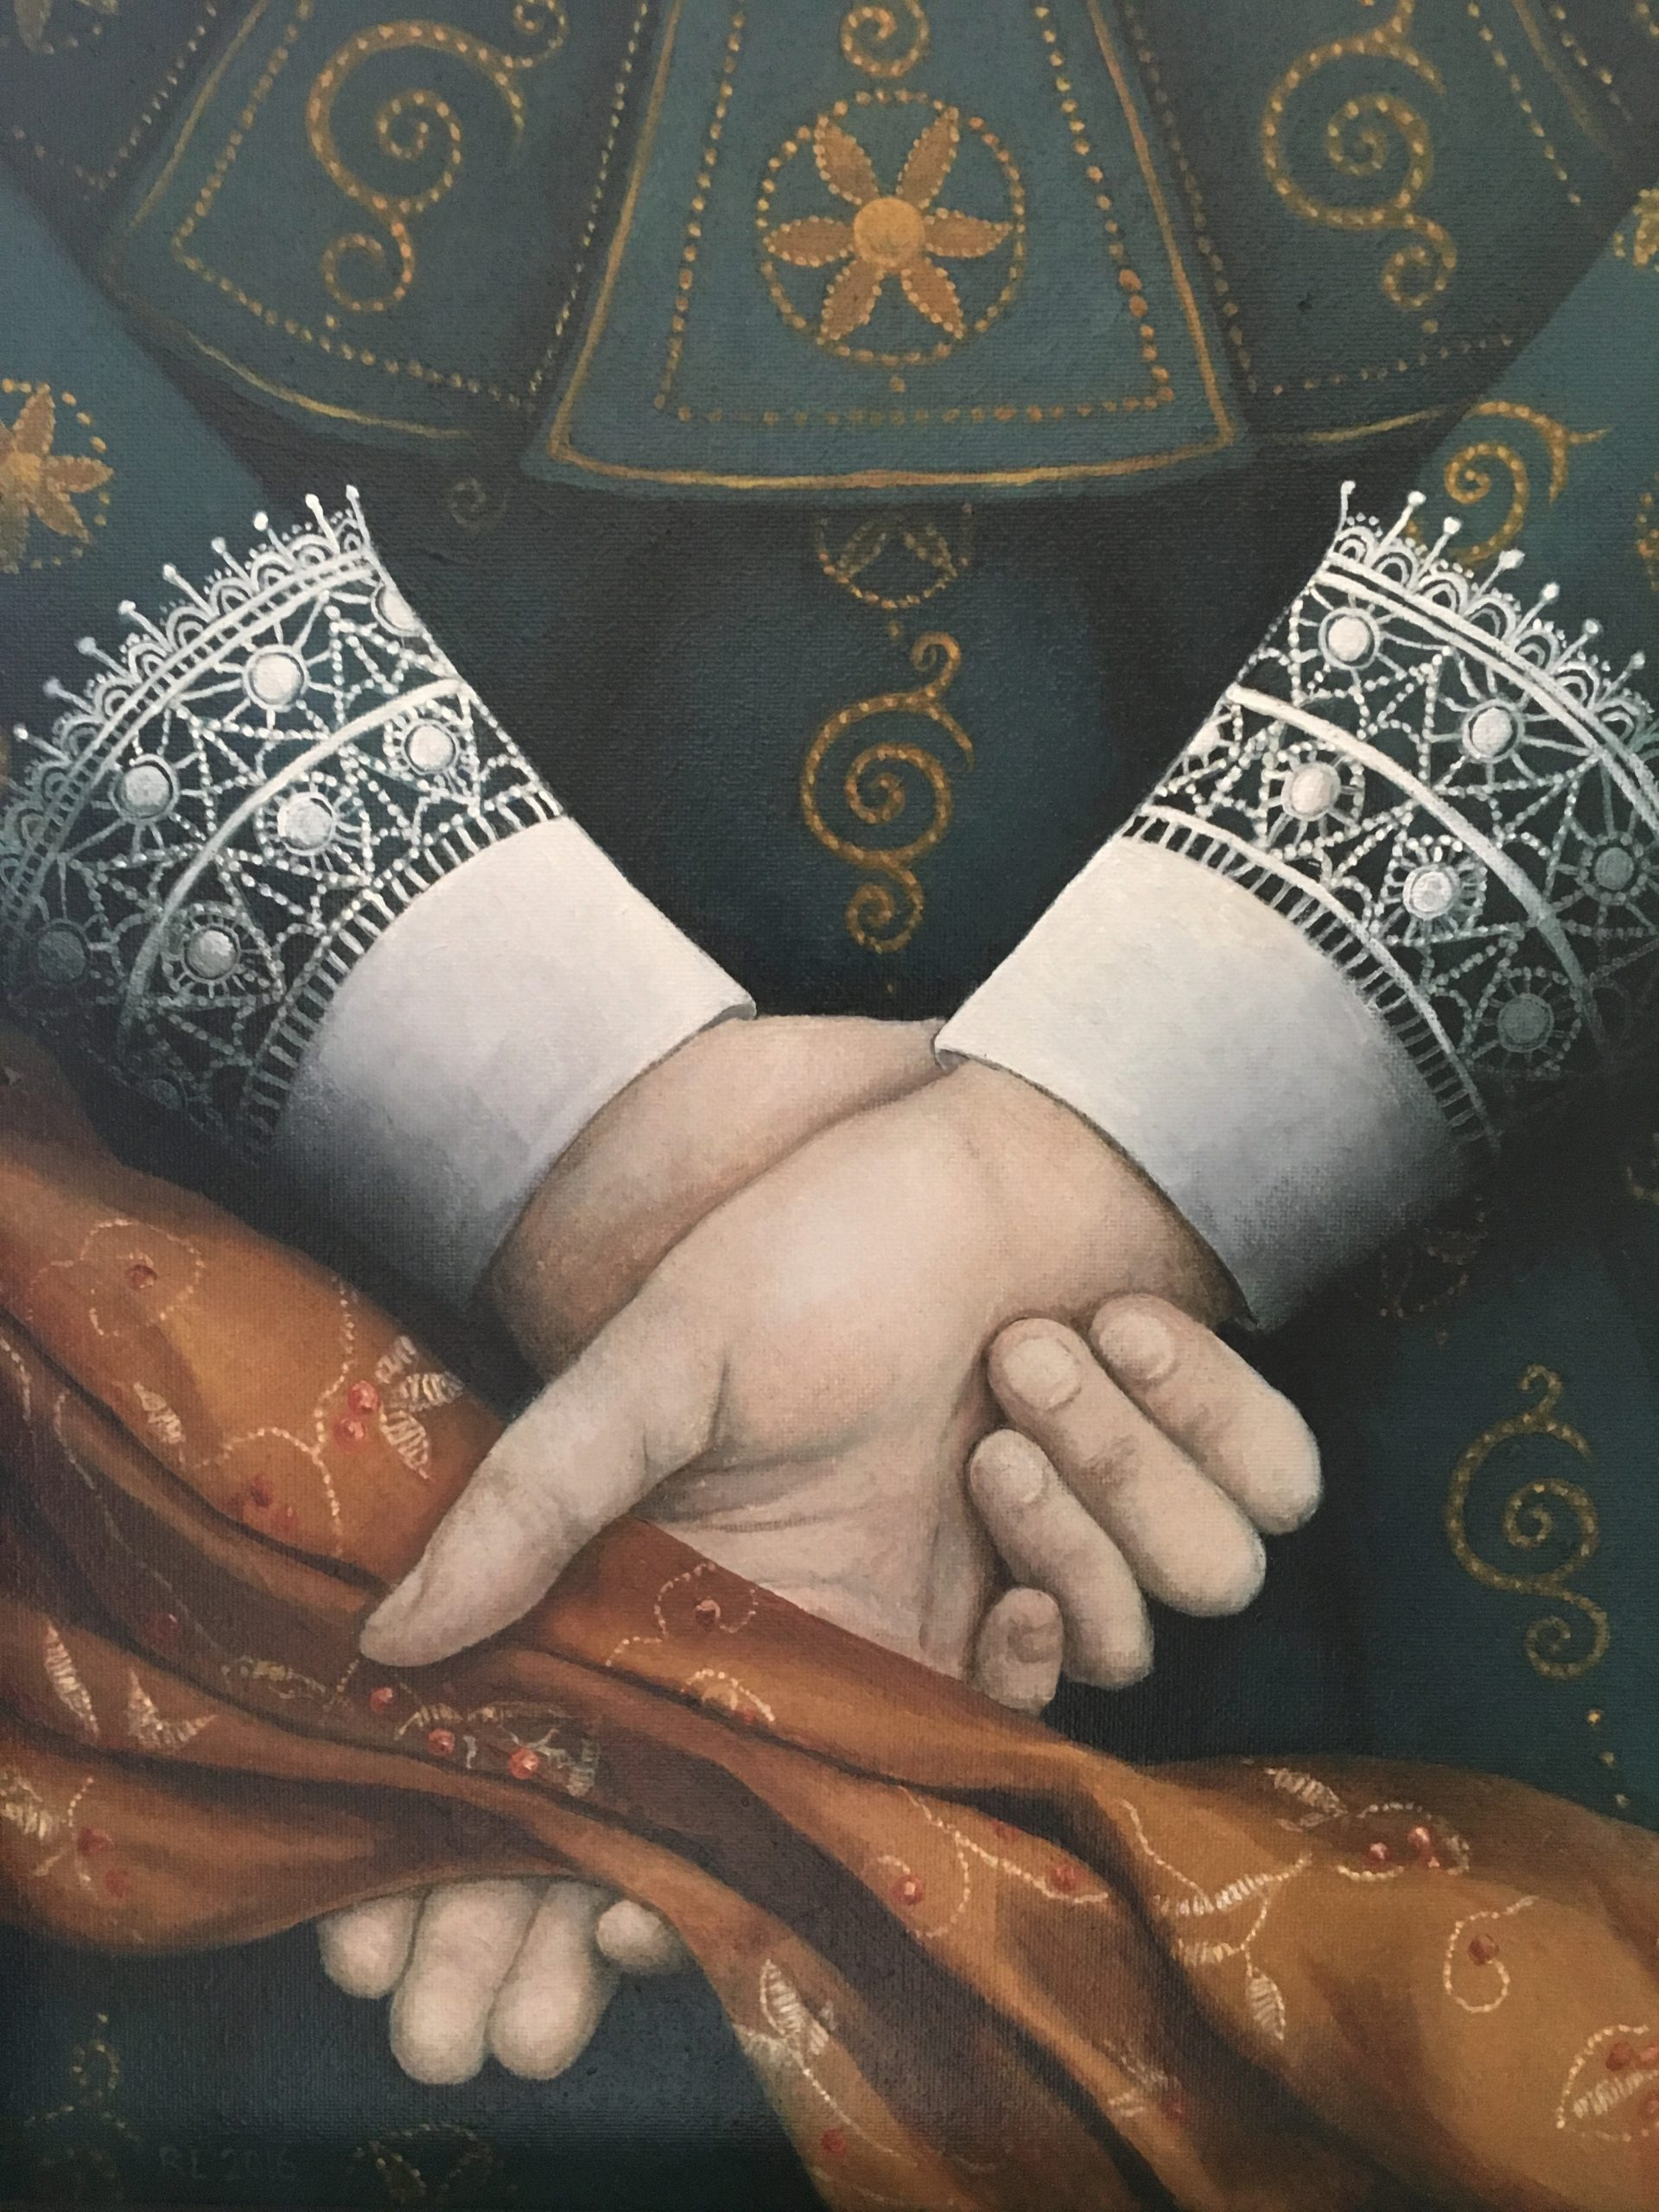 Ros Lyons - But 'Twas Her Hands - Oil on Board - 12 x 9.5 inches